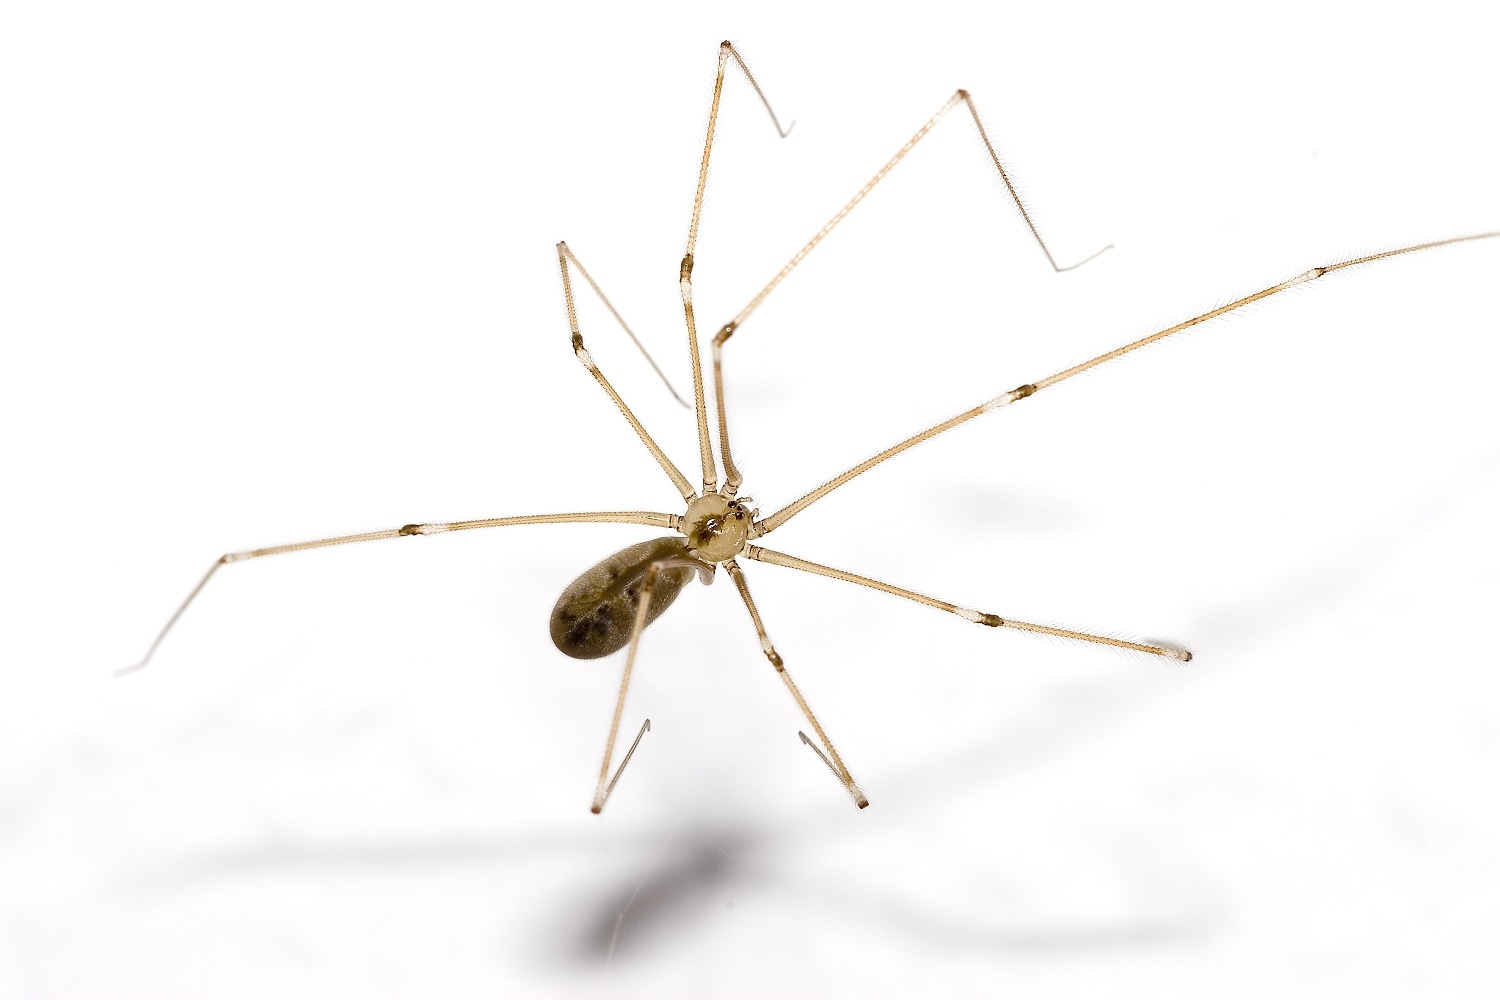 The appearance of cellar spider